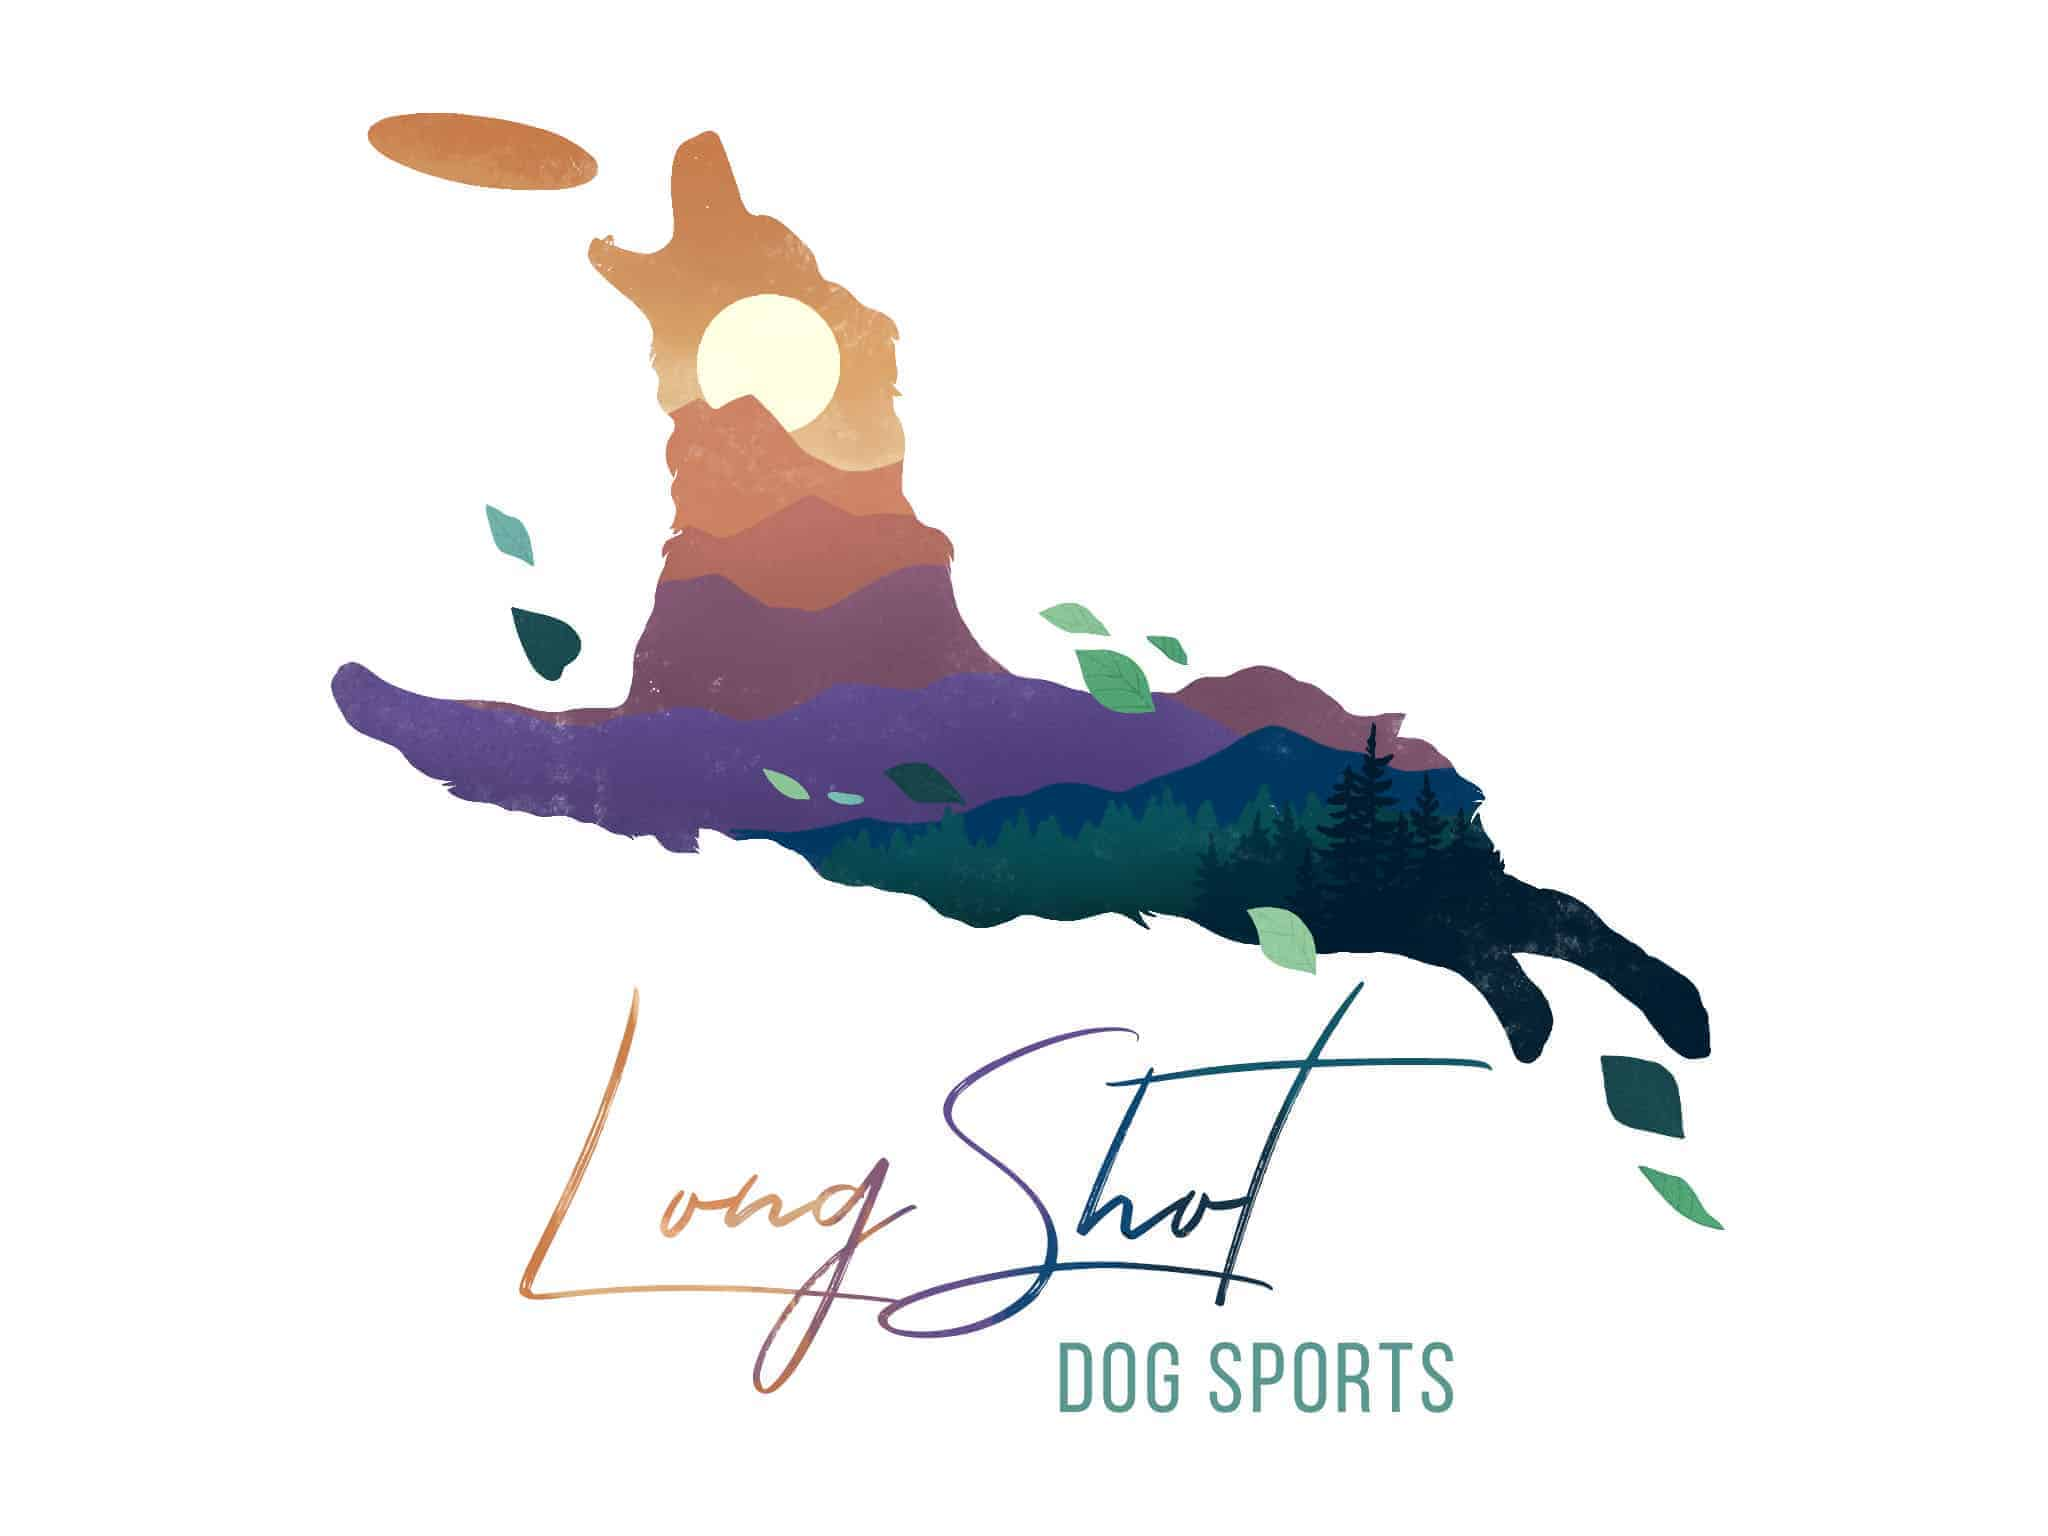 Long Shot Dog Sports